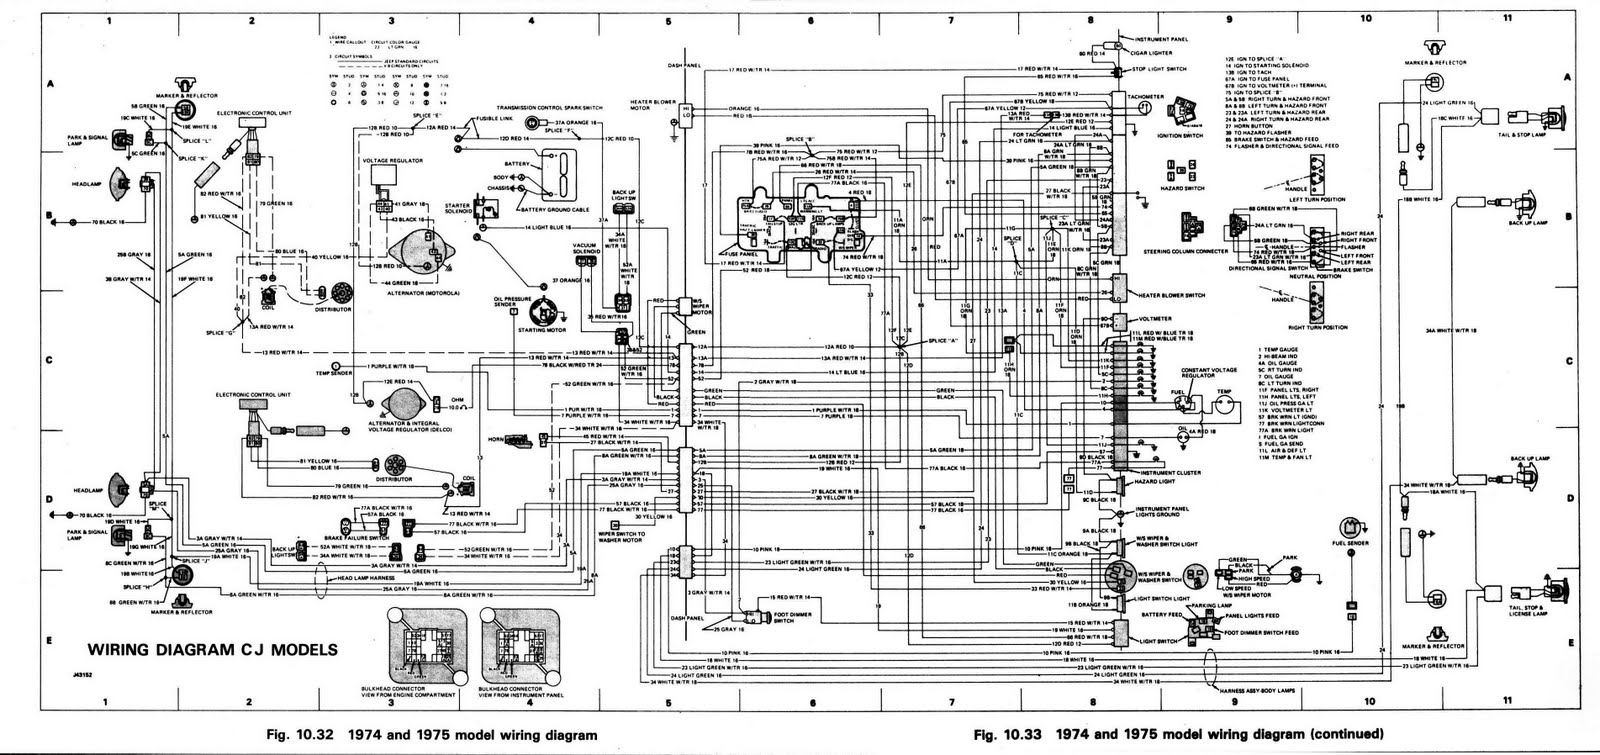 1974 1975 jeep cj models complete electrical wiring diagram [ 1600 x 755 Pixel ]